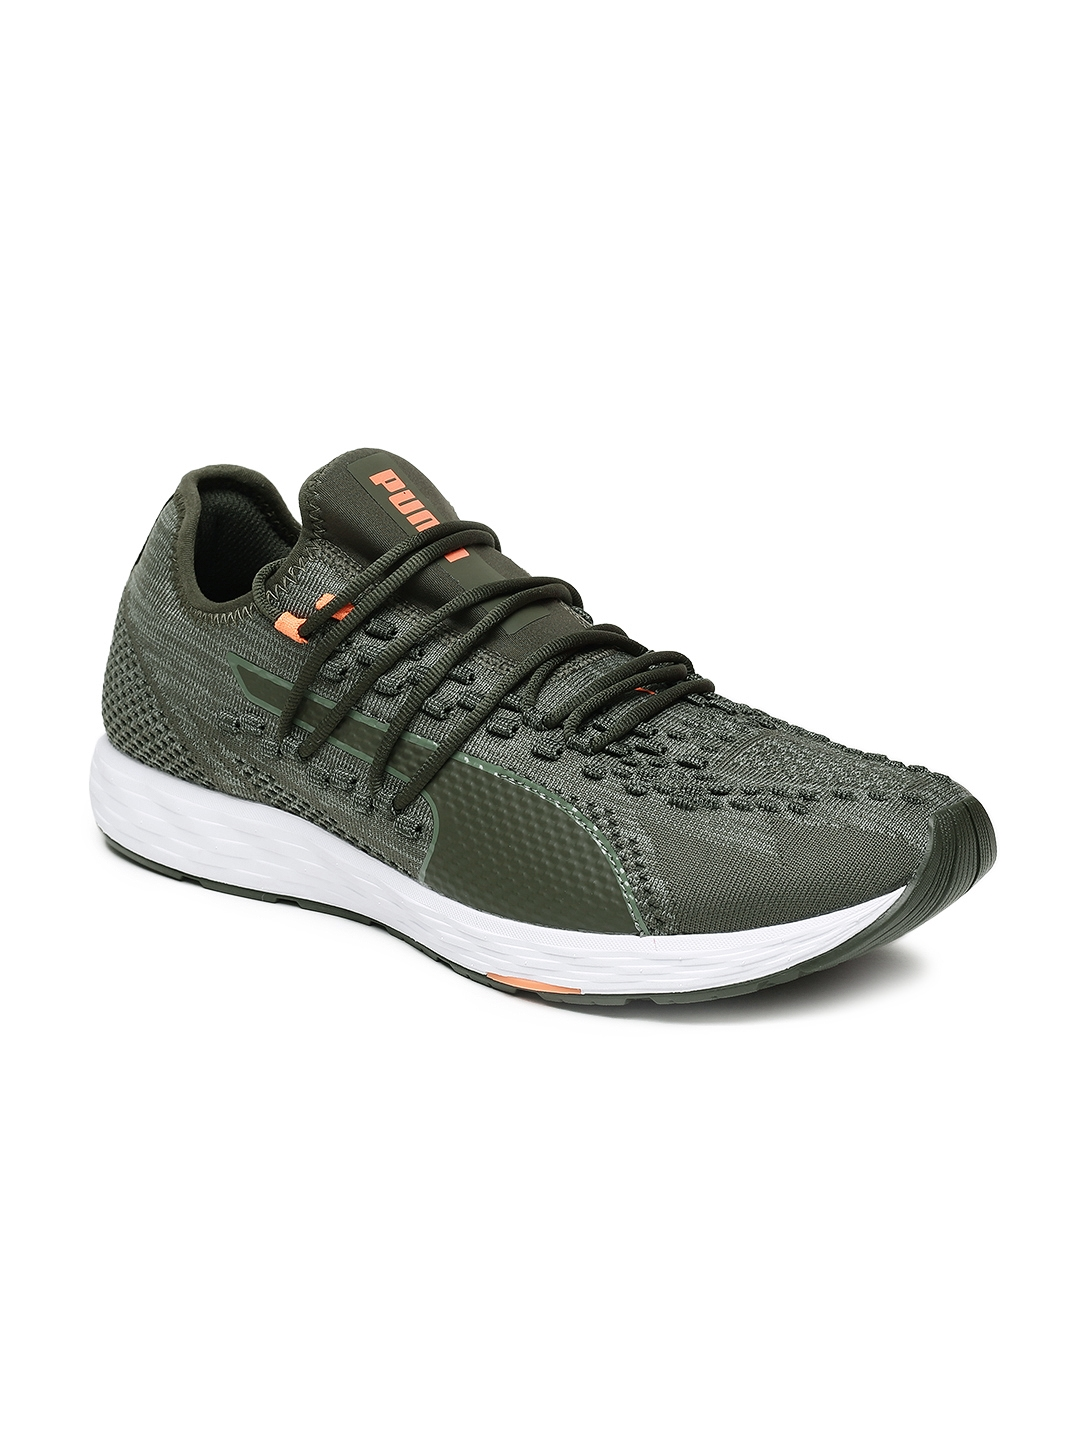 Buy Puma Men Olive Green SPEED RACER Running Shoes - Sports Shoes ... 6b867f2e53